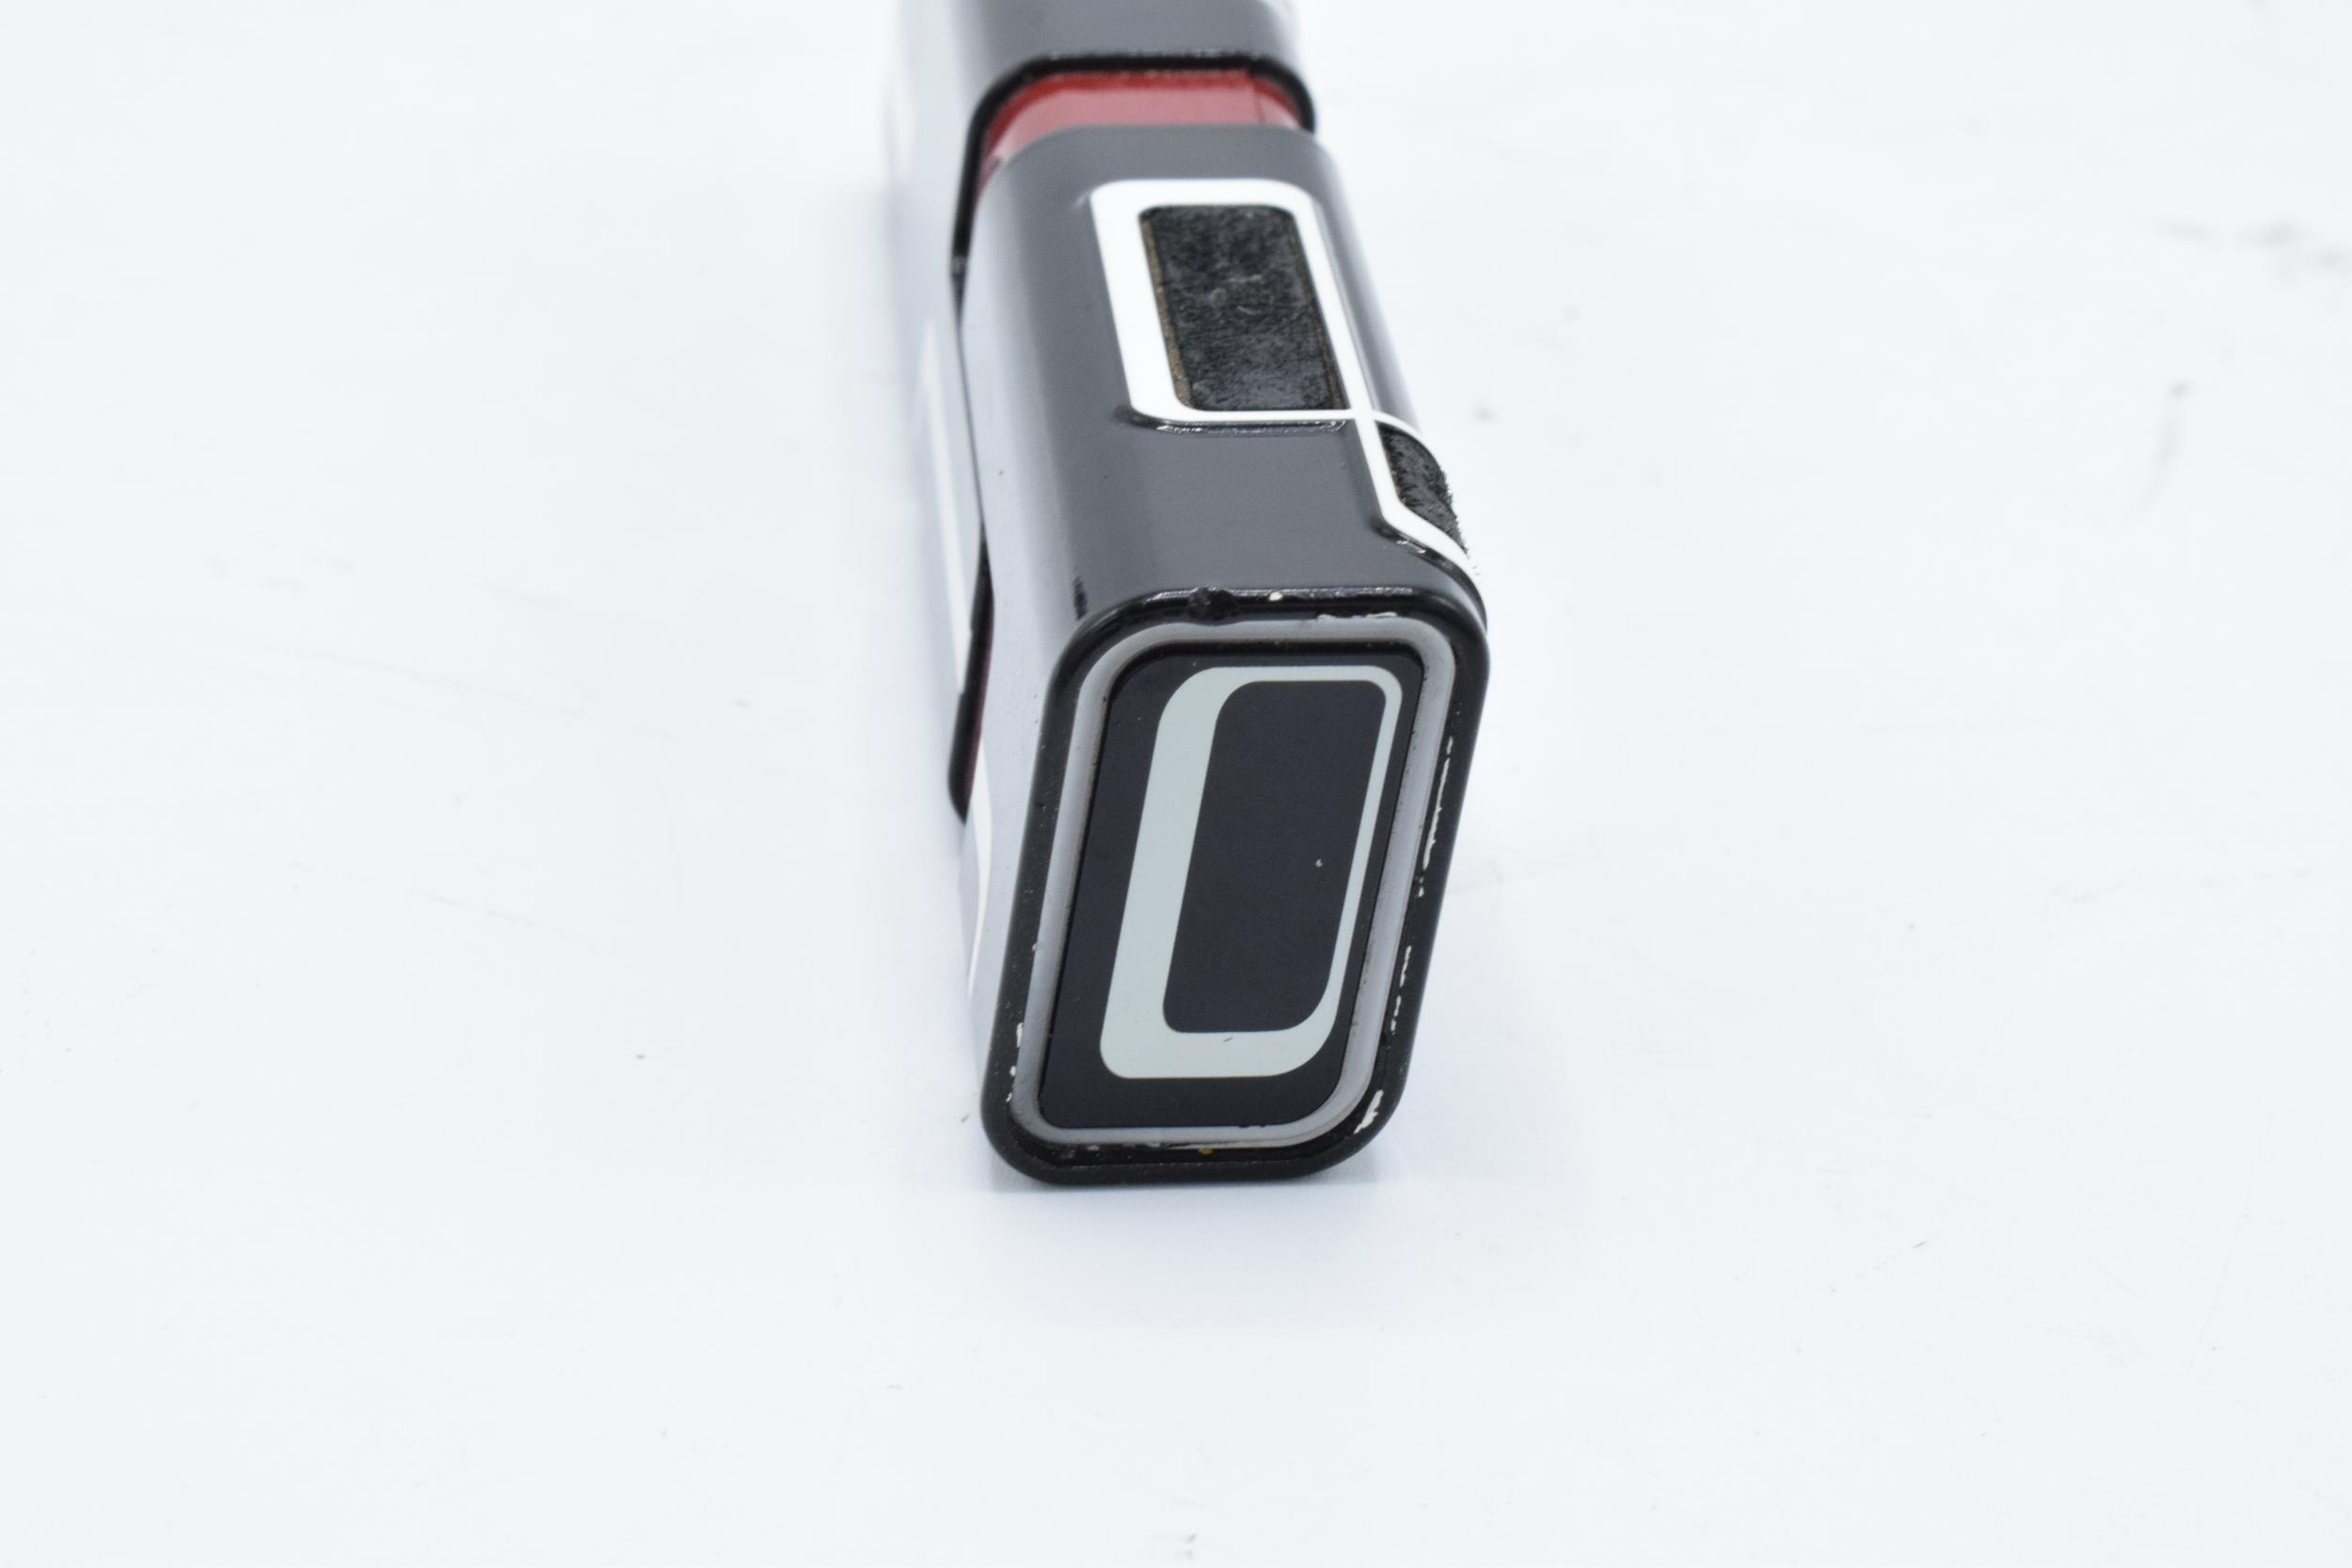 Nokia 7280 'lipstick' mobile phone complete with charger, ear phones and a printed user guide. - Image 7 of 8